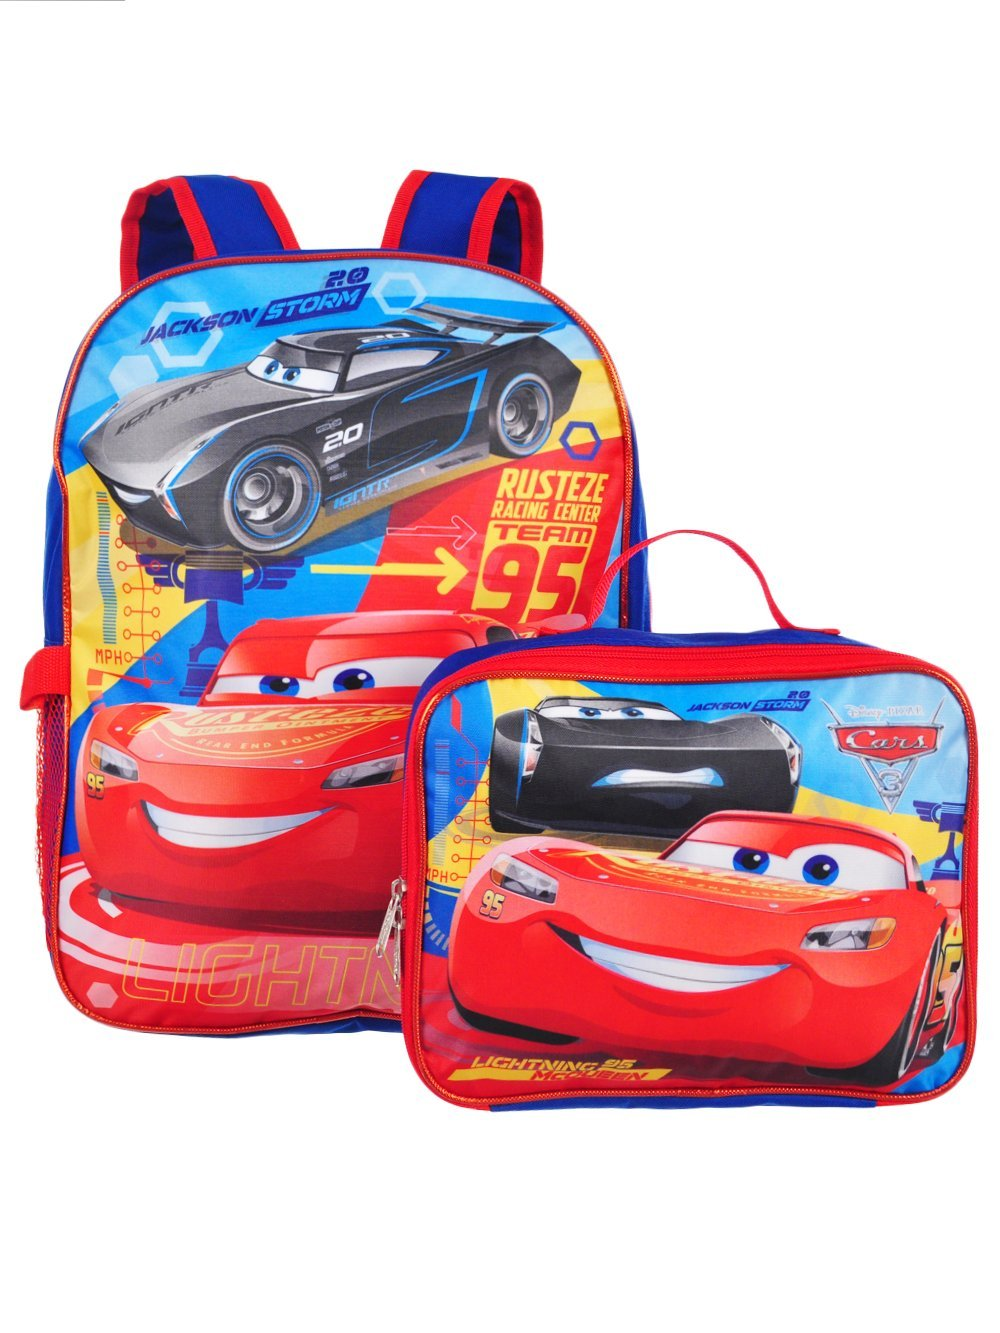 Cars Disney Pixar Jackson & Lightning McQueen 16 Backpack W/Detachable Lunch Box Group Ruz